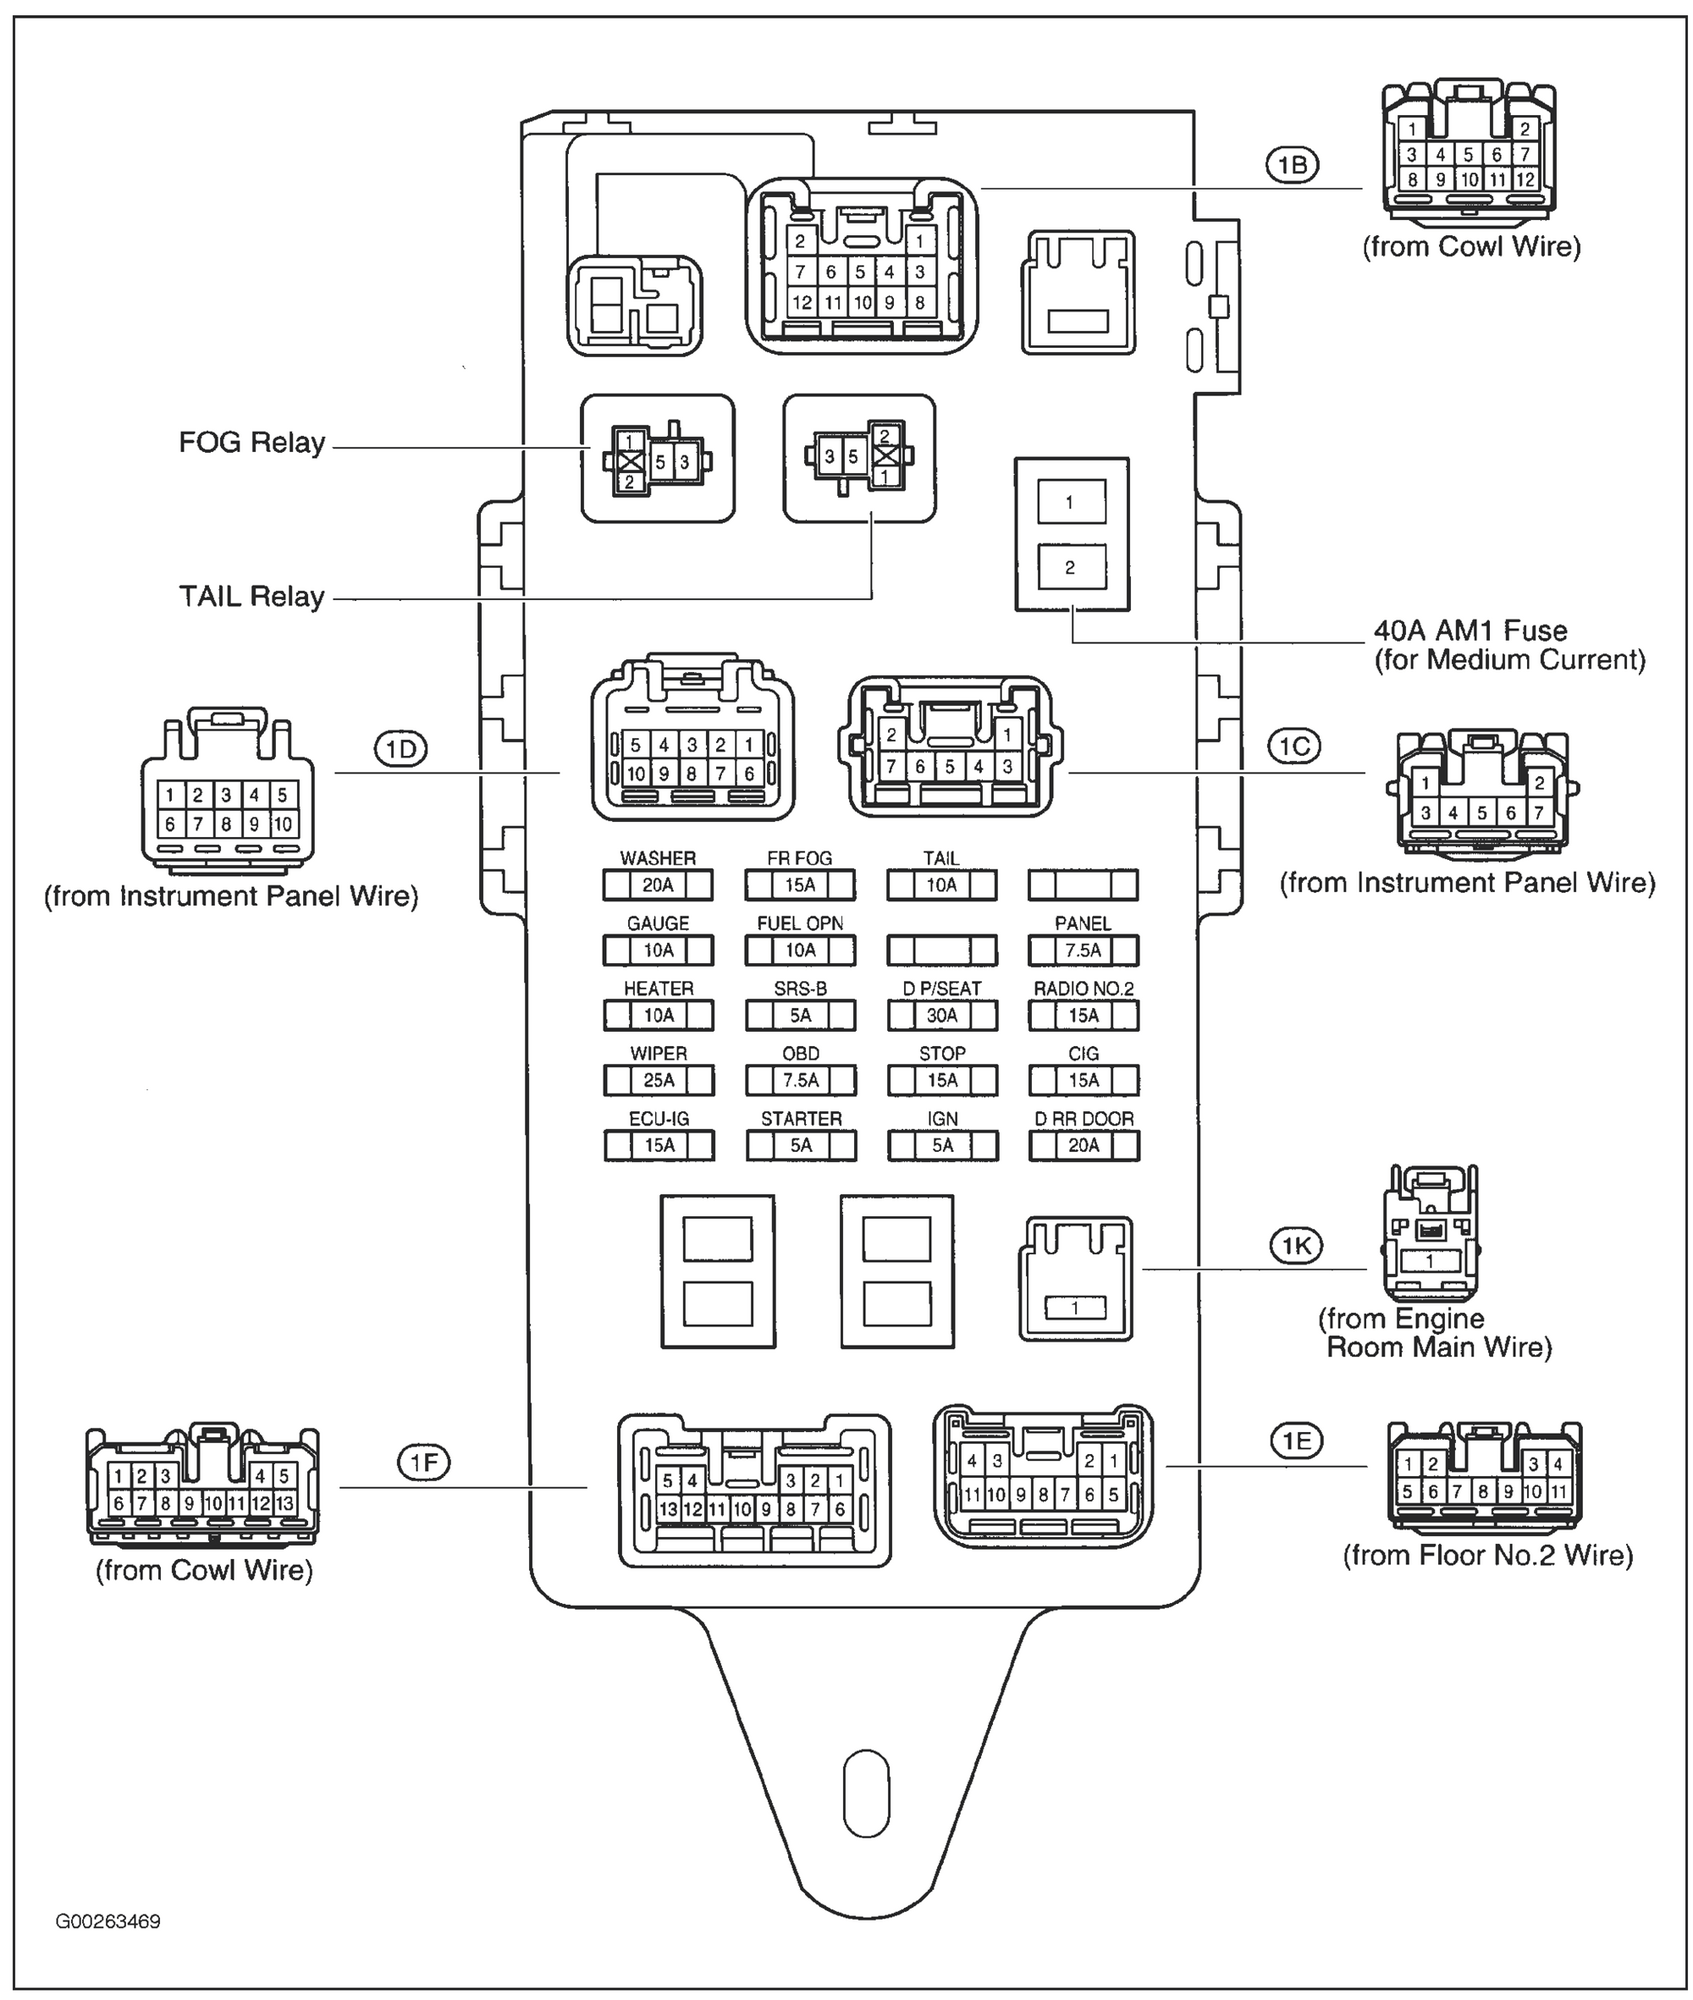 hight resolution of fuse box diagram lexus rx300 wiring diagram split lexus rx400h fuse diagram 1999 lexus rx300 fuse